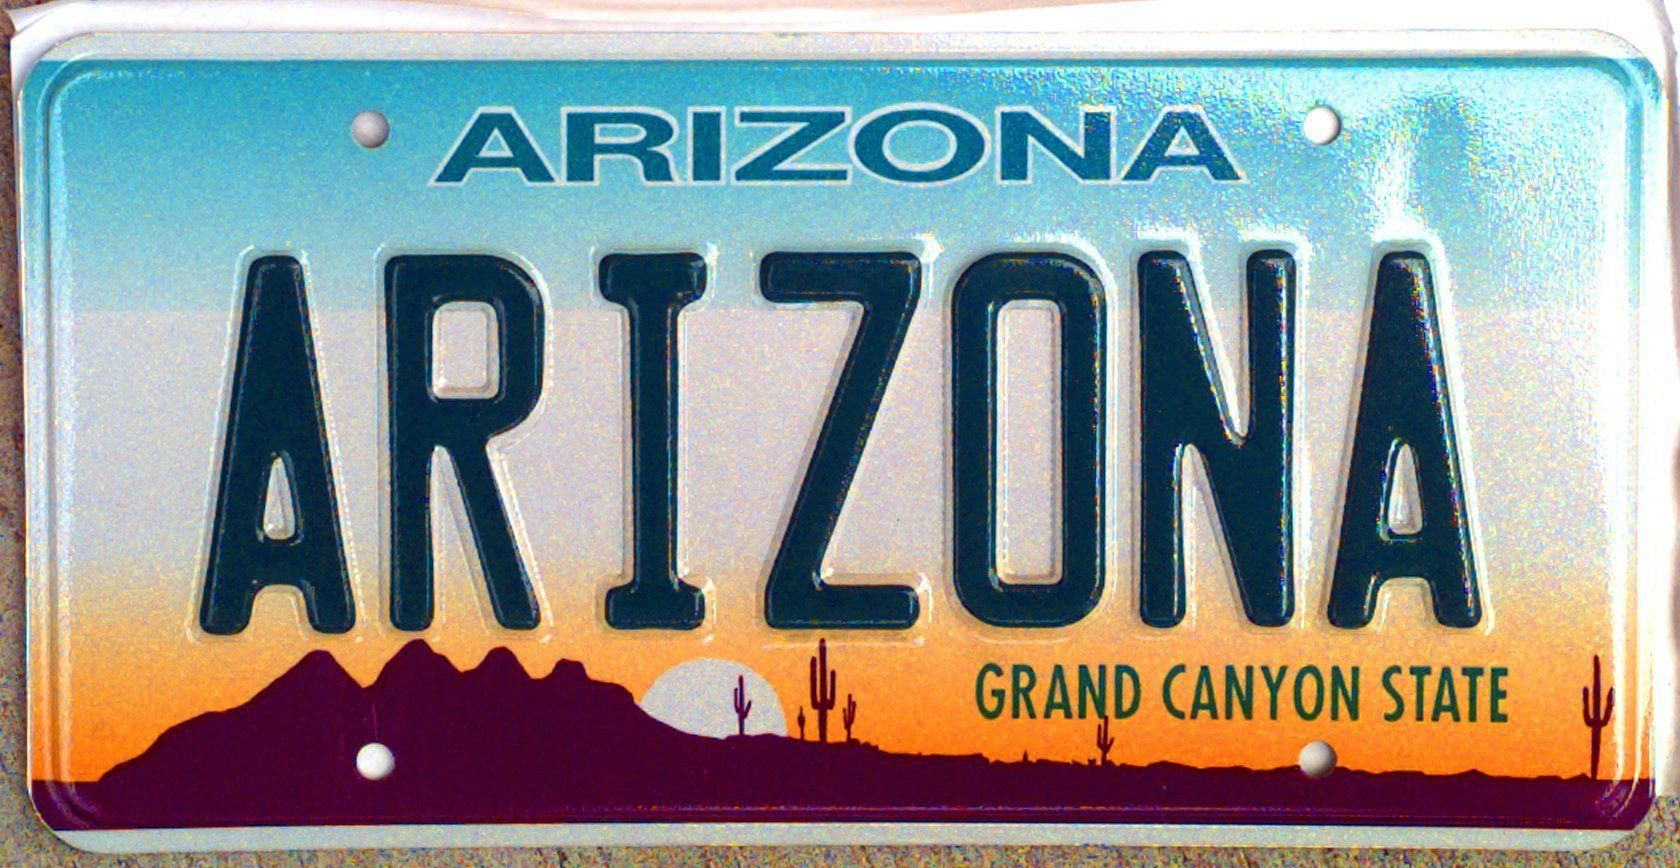 Arizona\u0027s license plate  sc 1 st  Arizona Daily Star & Arizona outlaws plastic covers films that obscure license plates ...